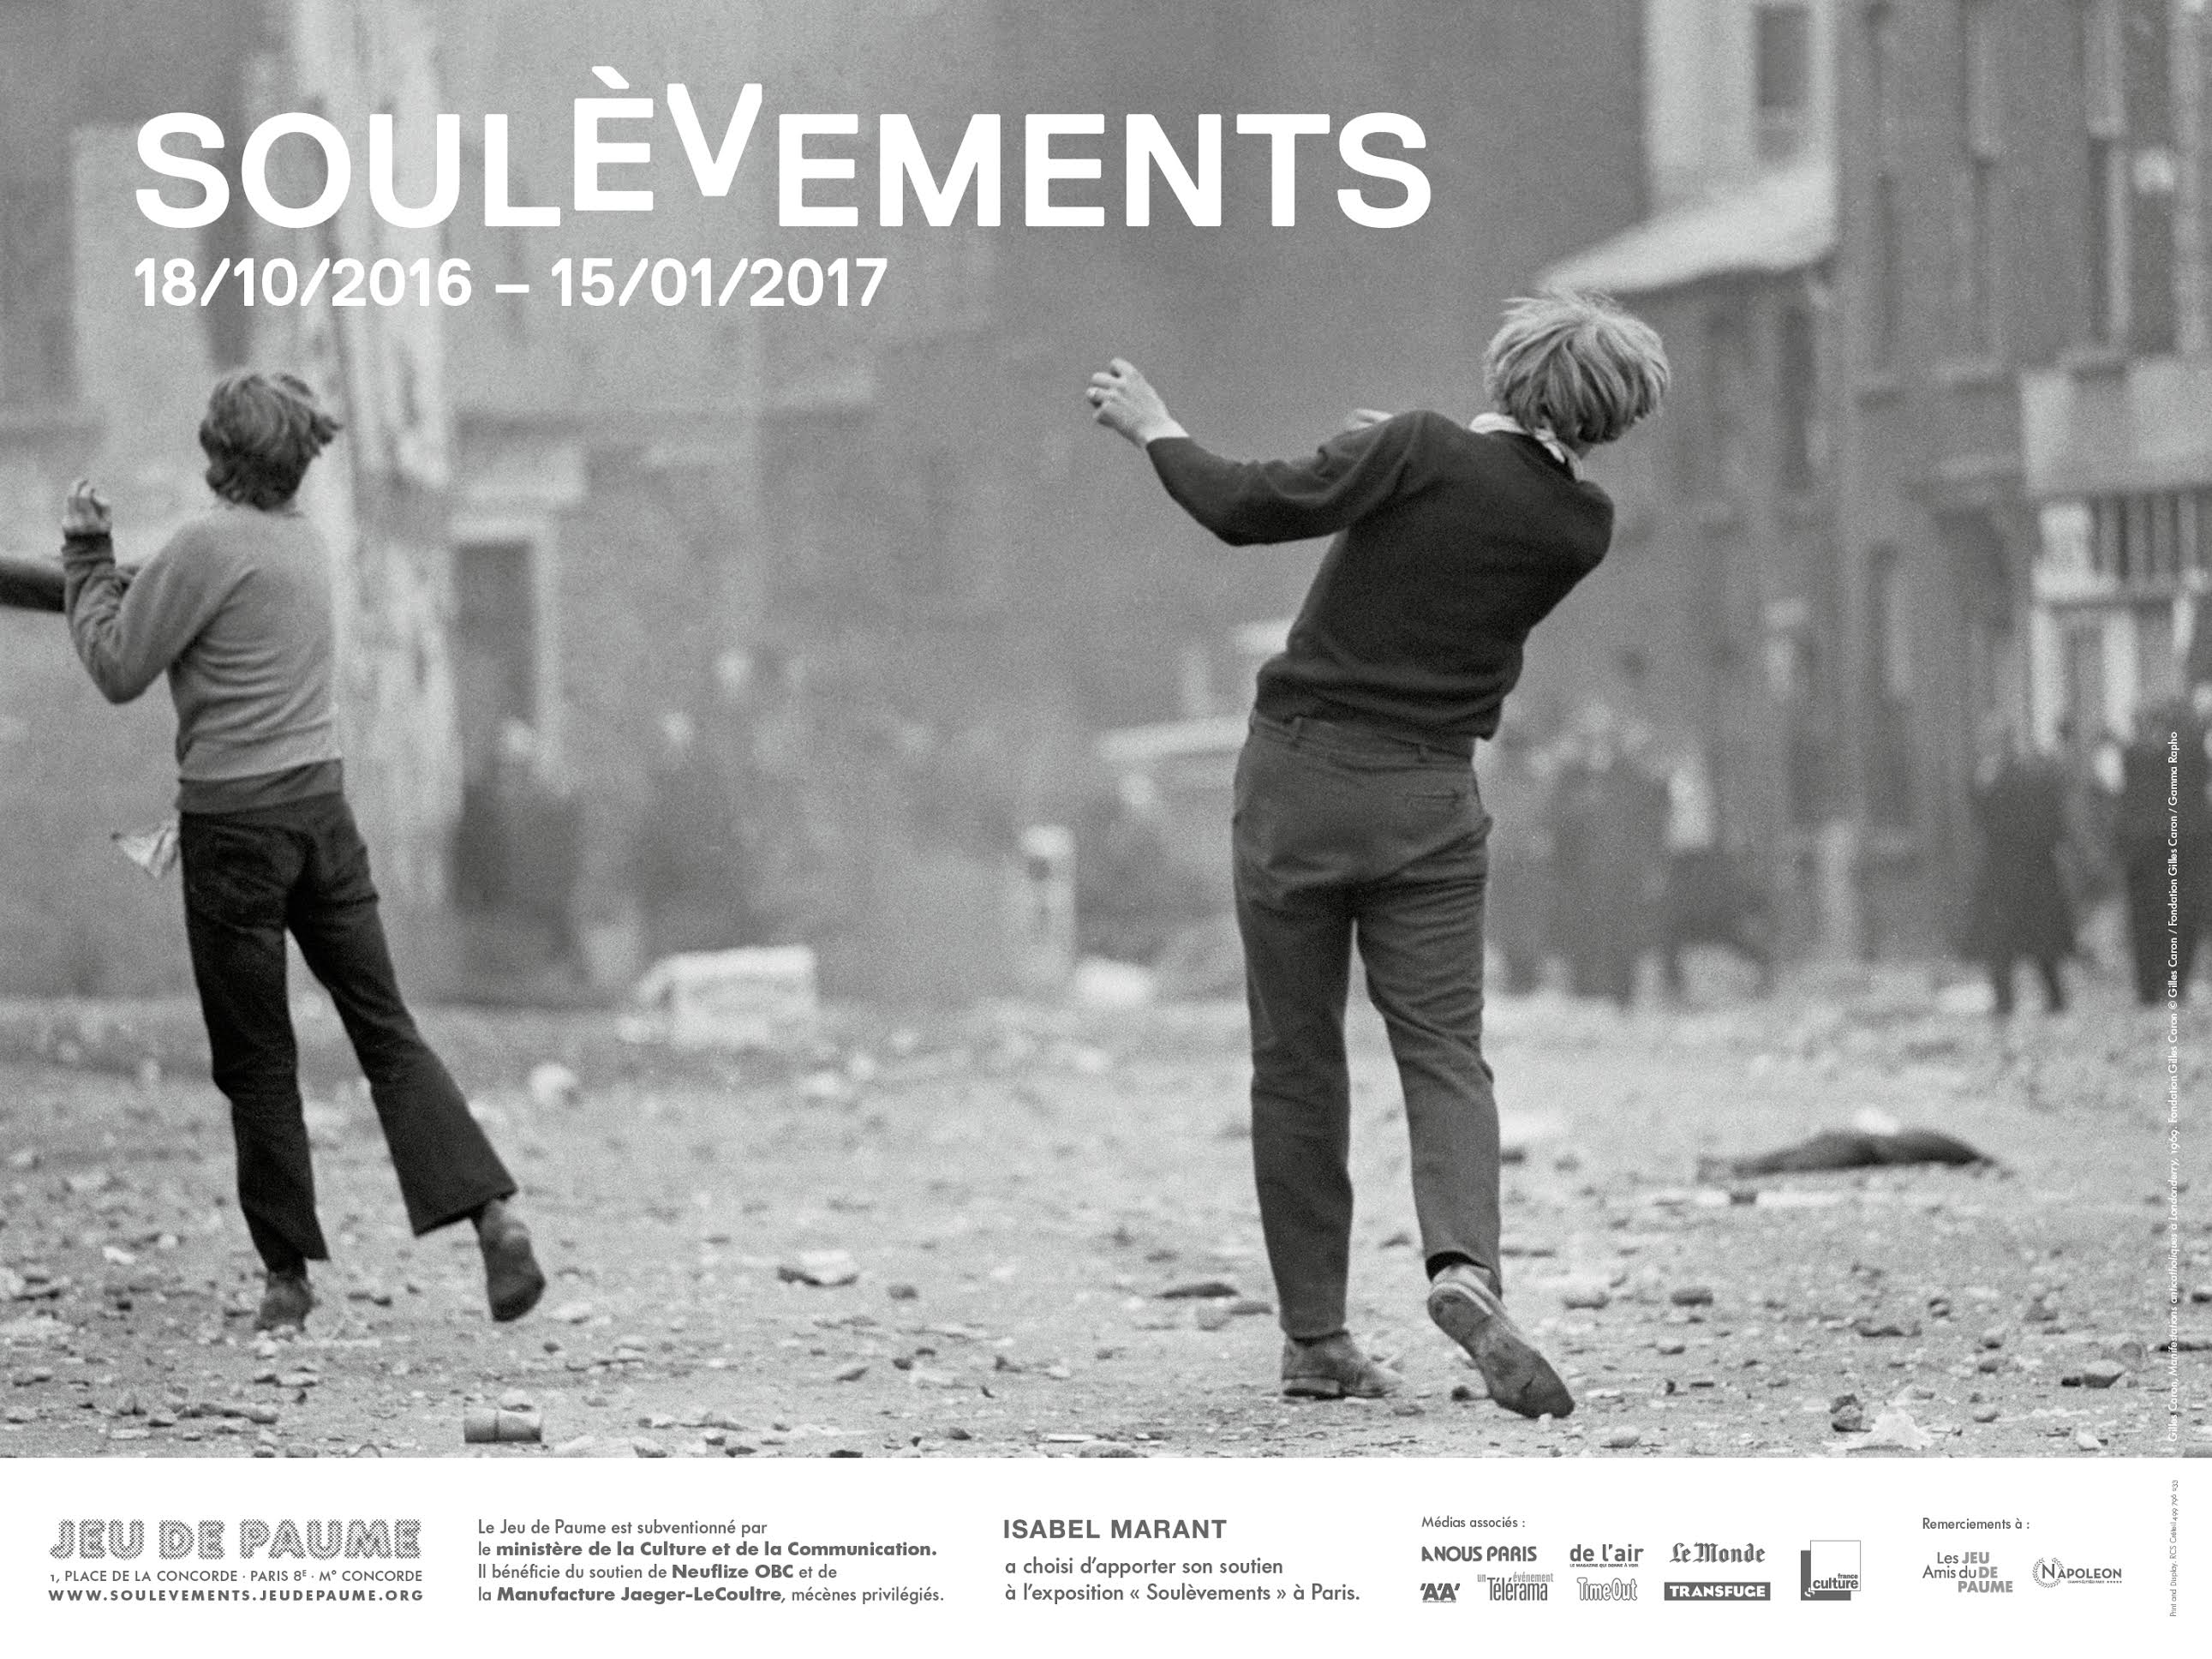 Poster for the exhibition Soulèvements at Jeu de Paume, Paris, image: Gilles Caron, Manifestants catholiques, Bataille du Bogside, Derry, 1969